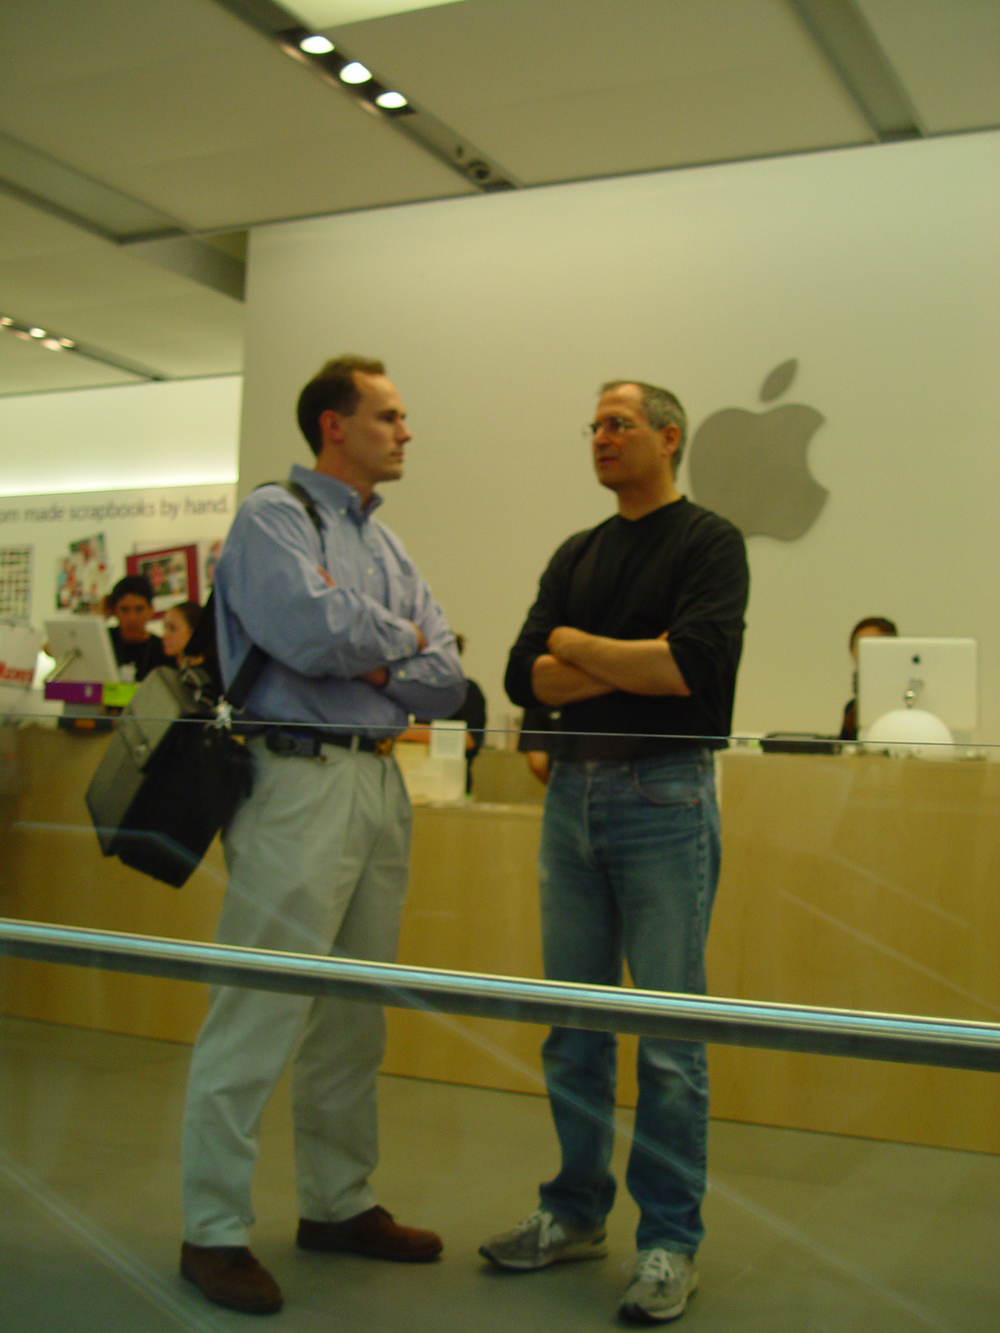 Steve Jobs, opening of the NYC Soho Apple store 2002, it was amazing to meet the man in person if only quickly. I was writing for Desktop Magazine at the time.